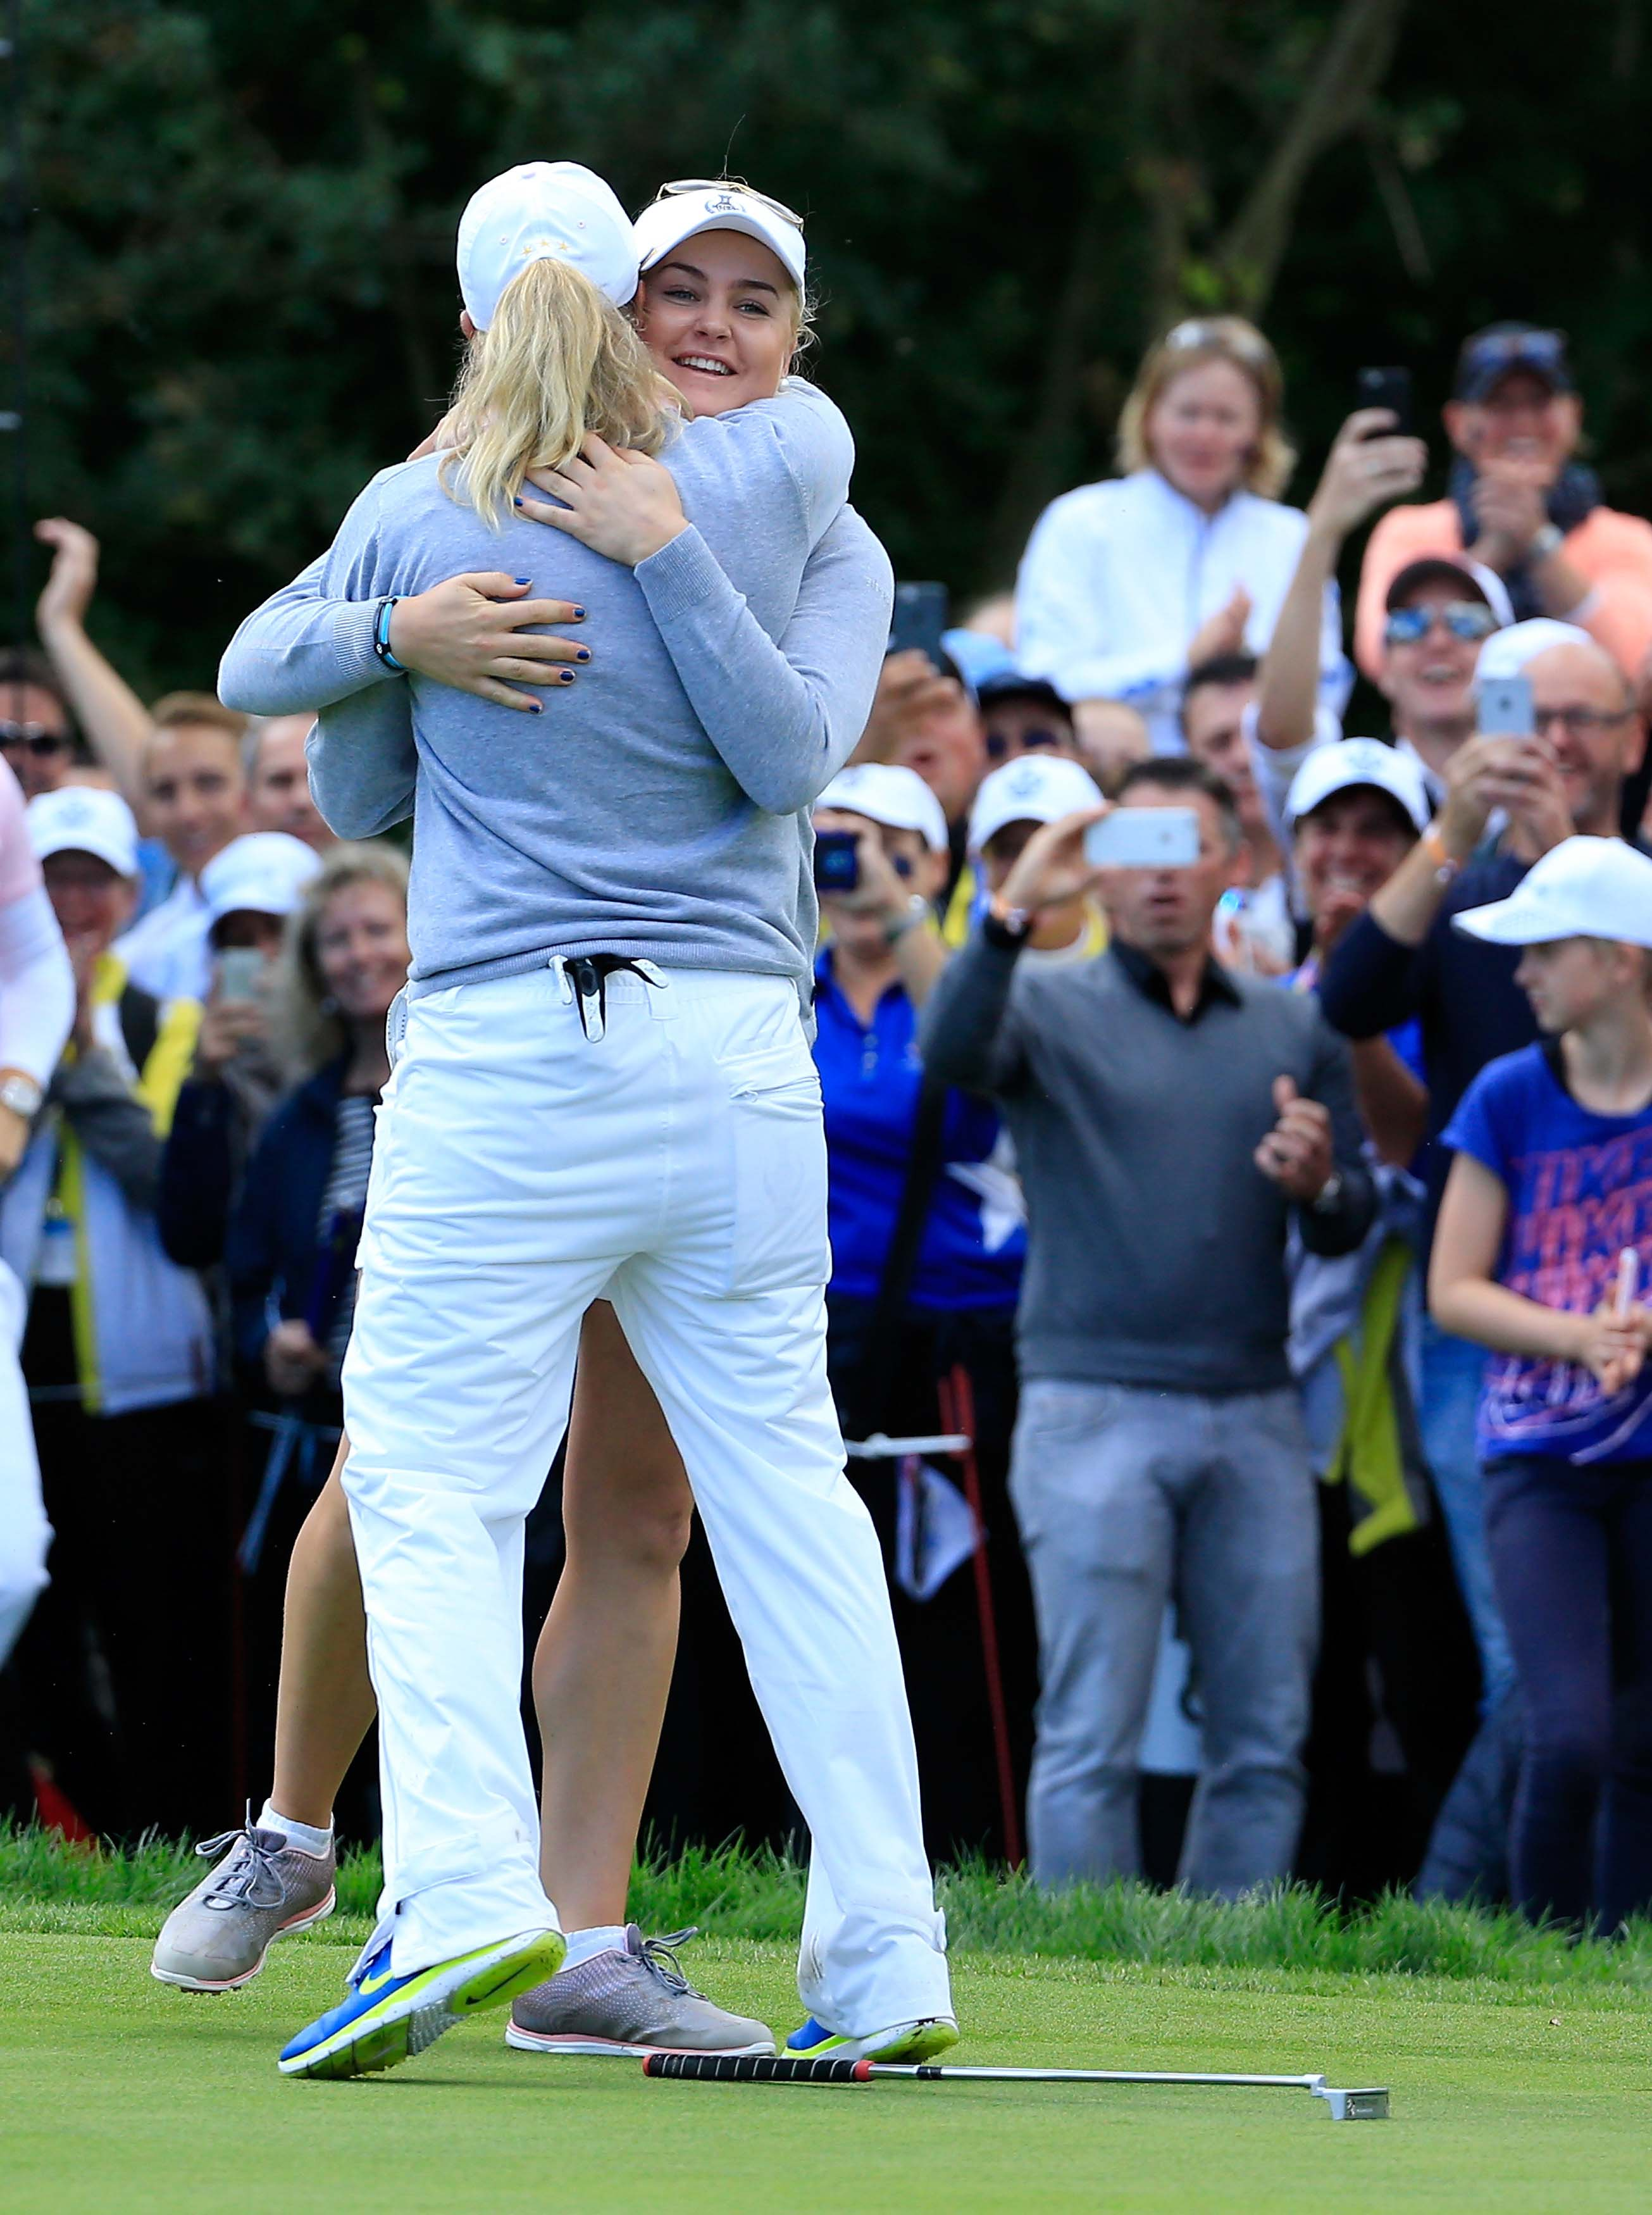 Charley Hull and Suzann Pettersen